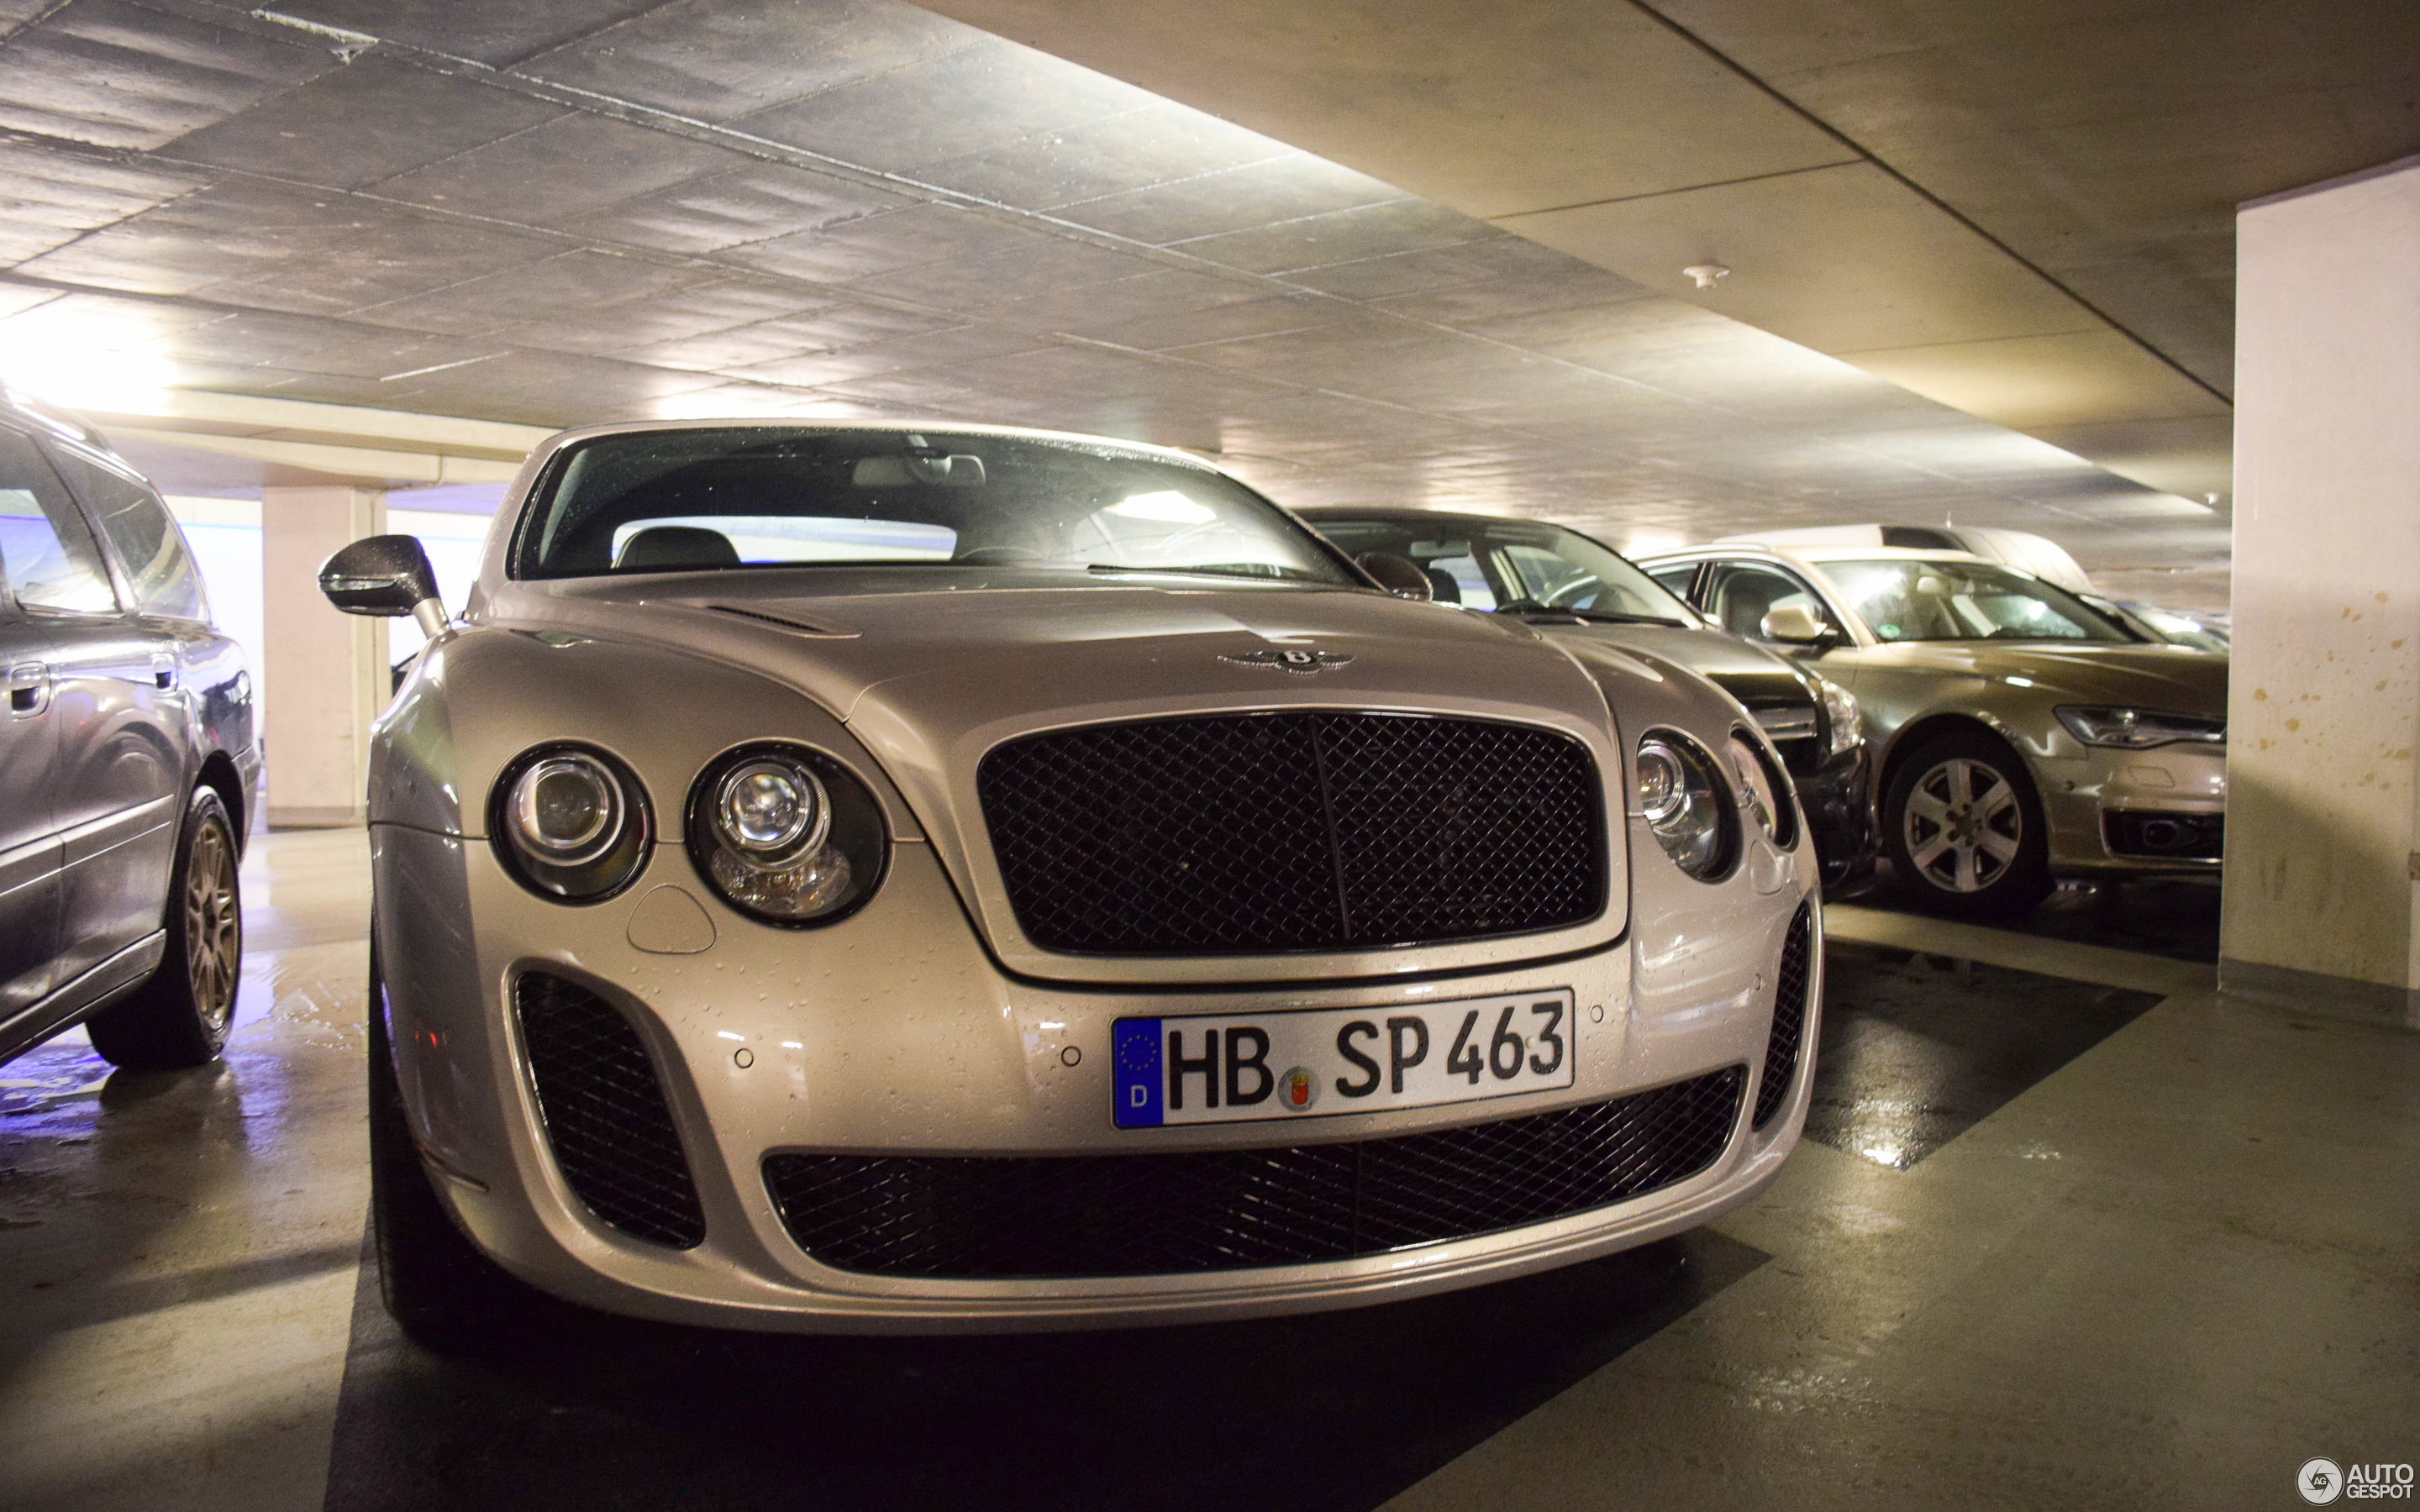 cars convertible range com a gtgtc n gtc o promoted en bentley y gt m continental items supersports s r